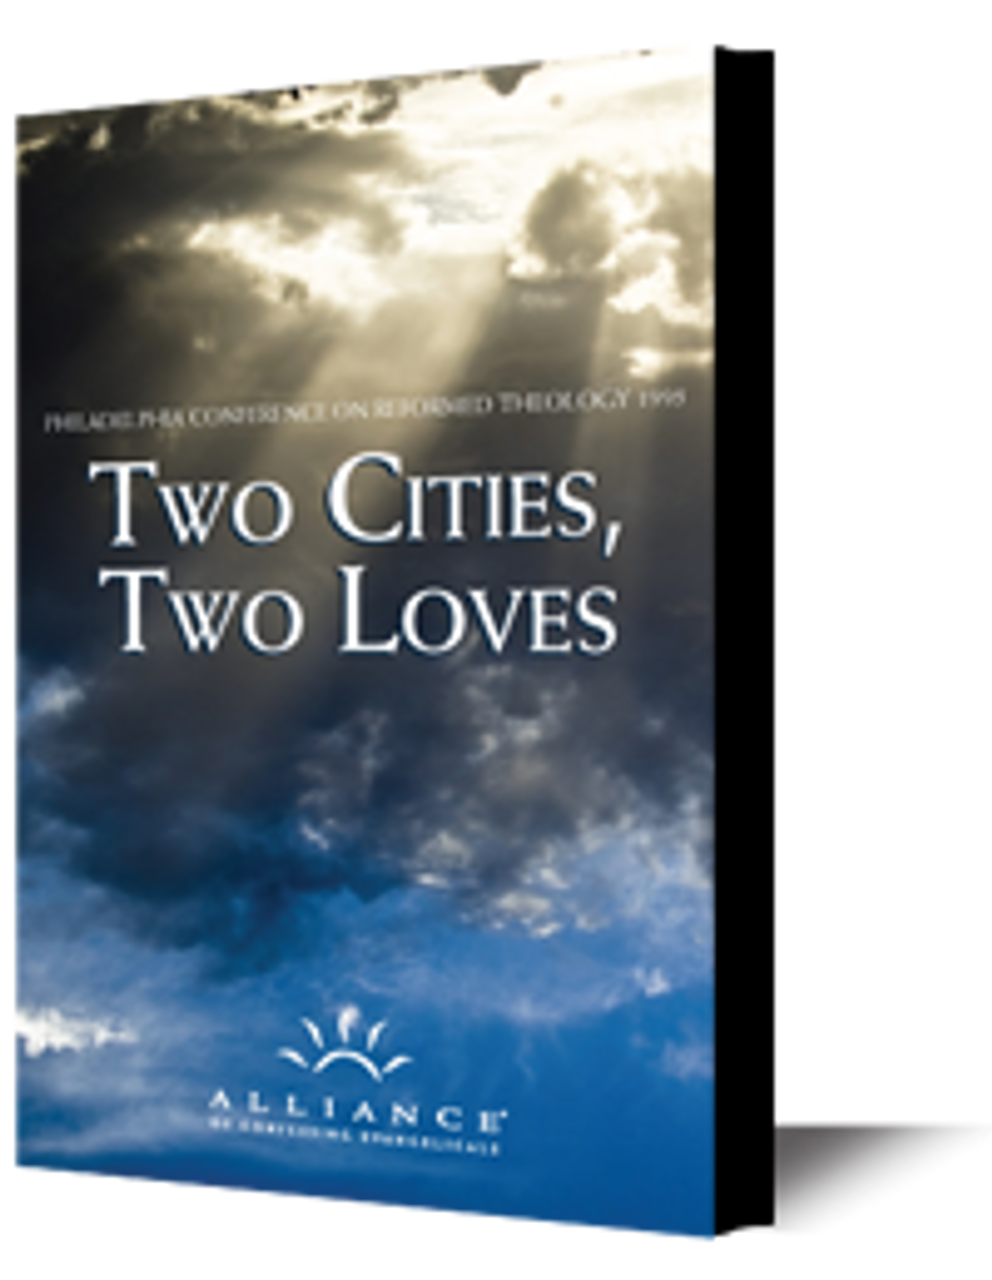 Two Cities, Two Loves PCRT 1995 (CD Set)